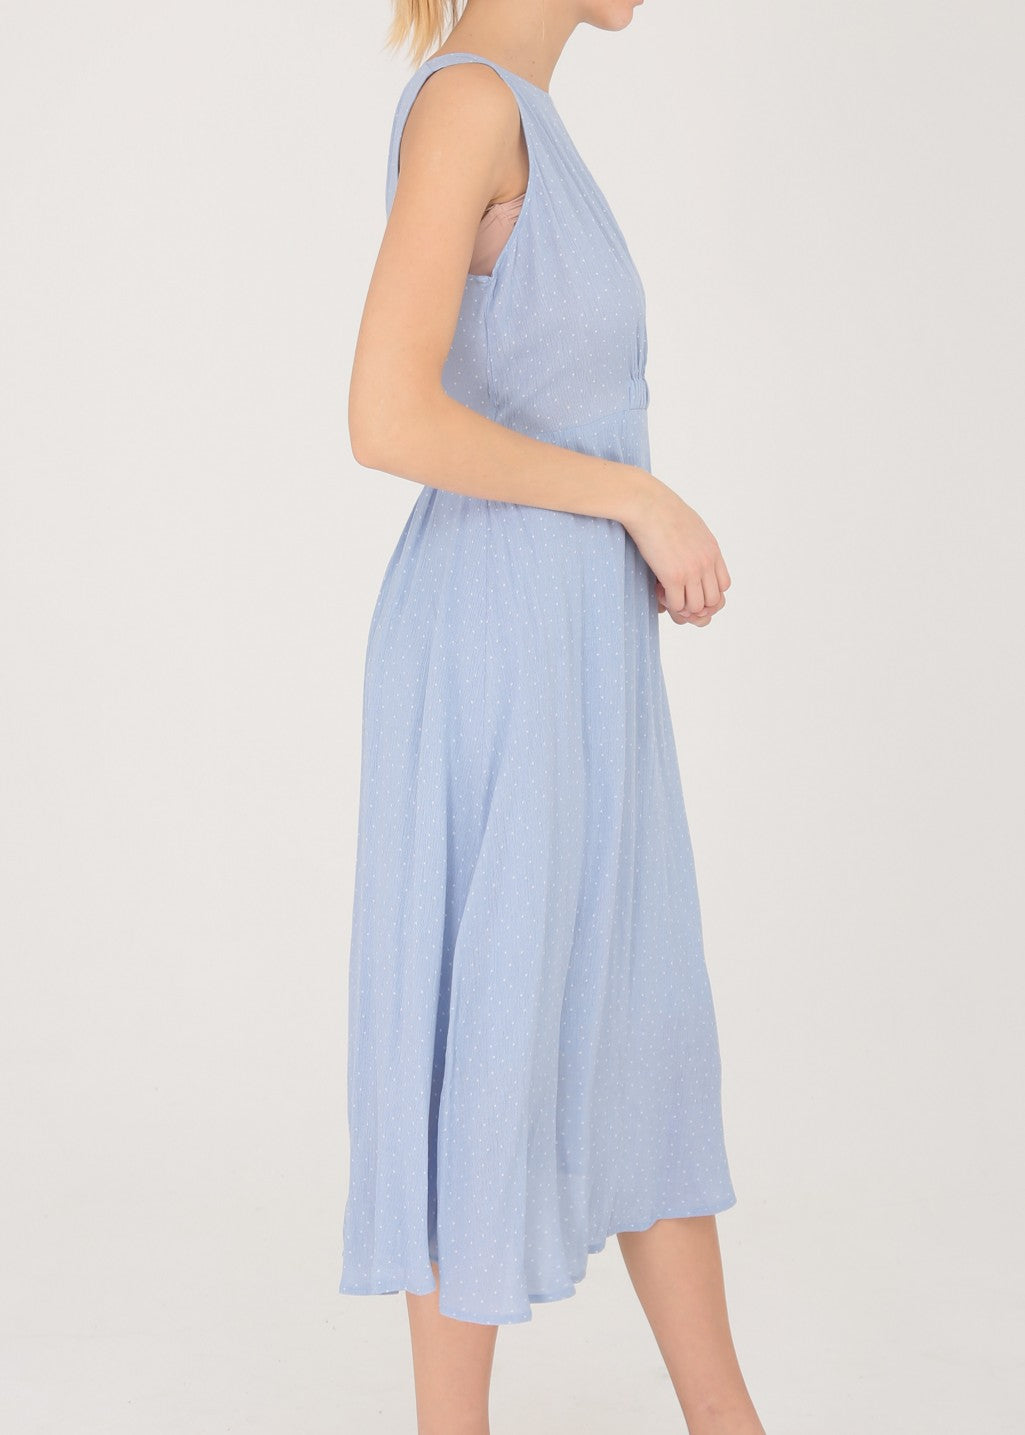 ESMEE - Long Dress